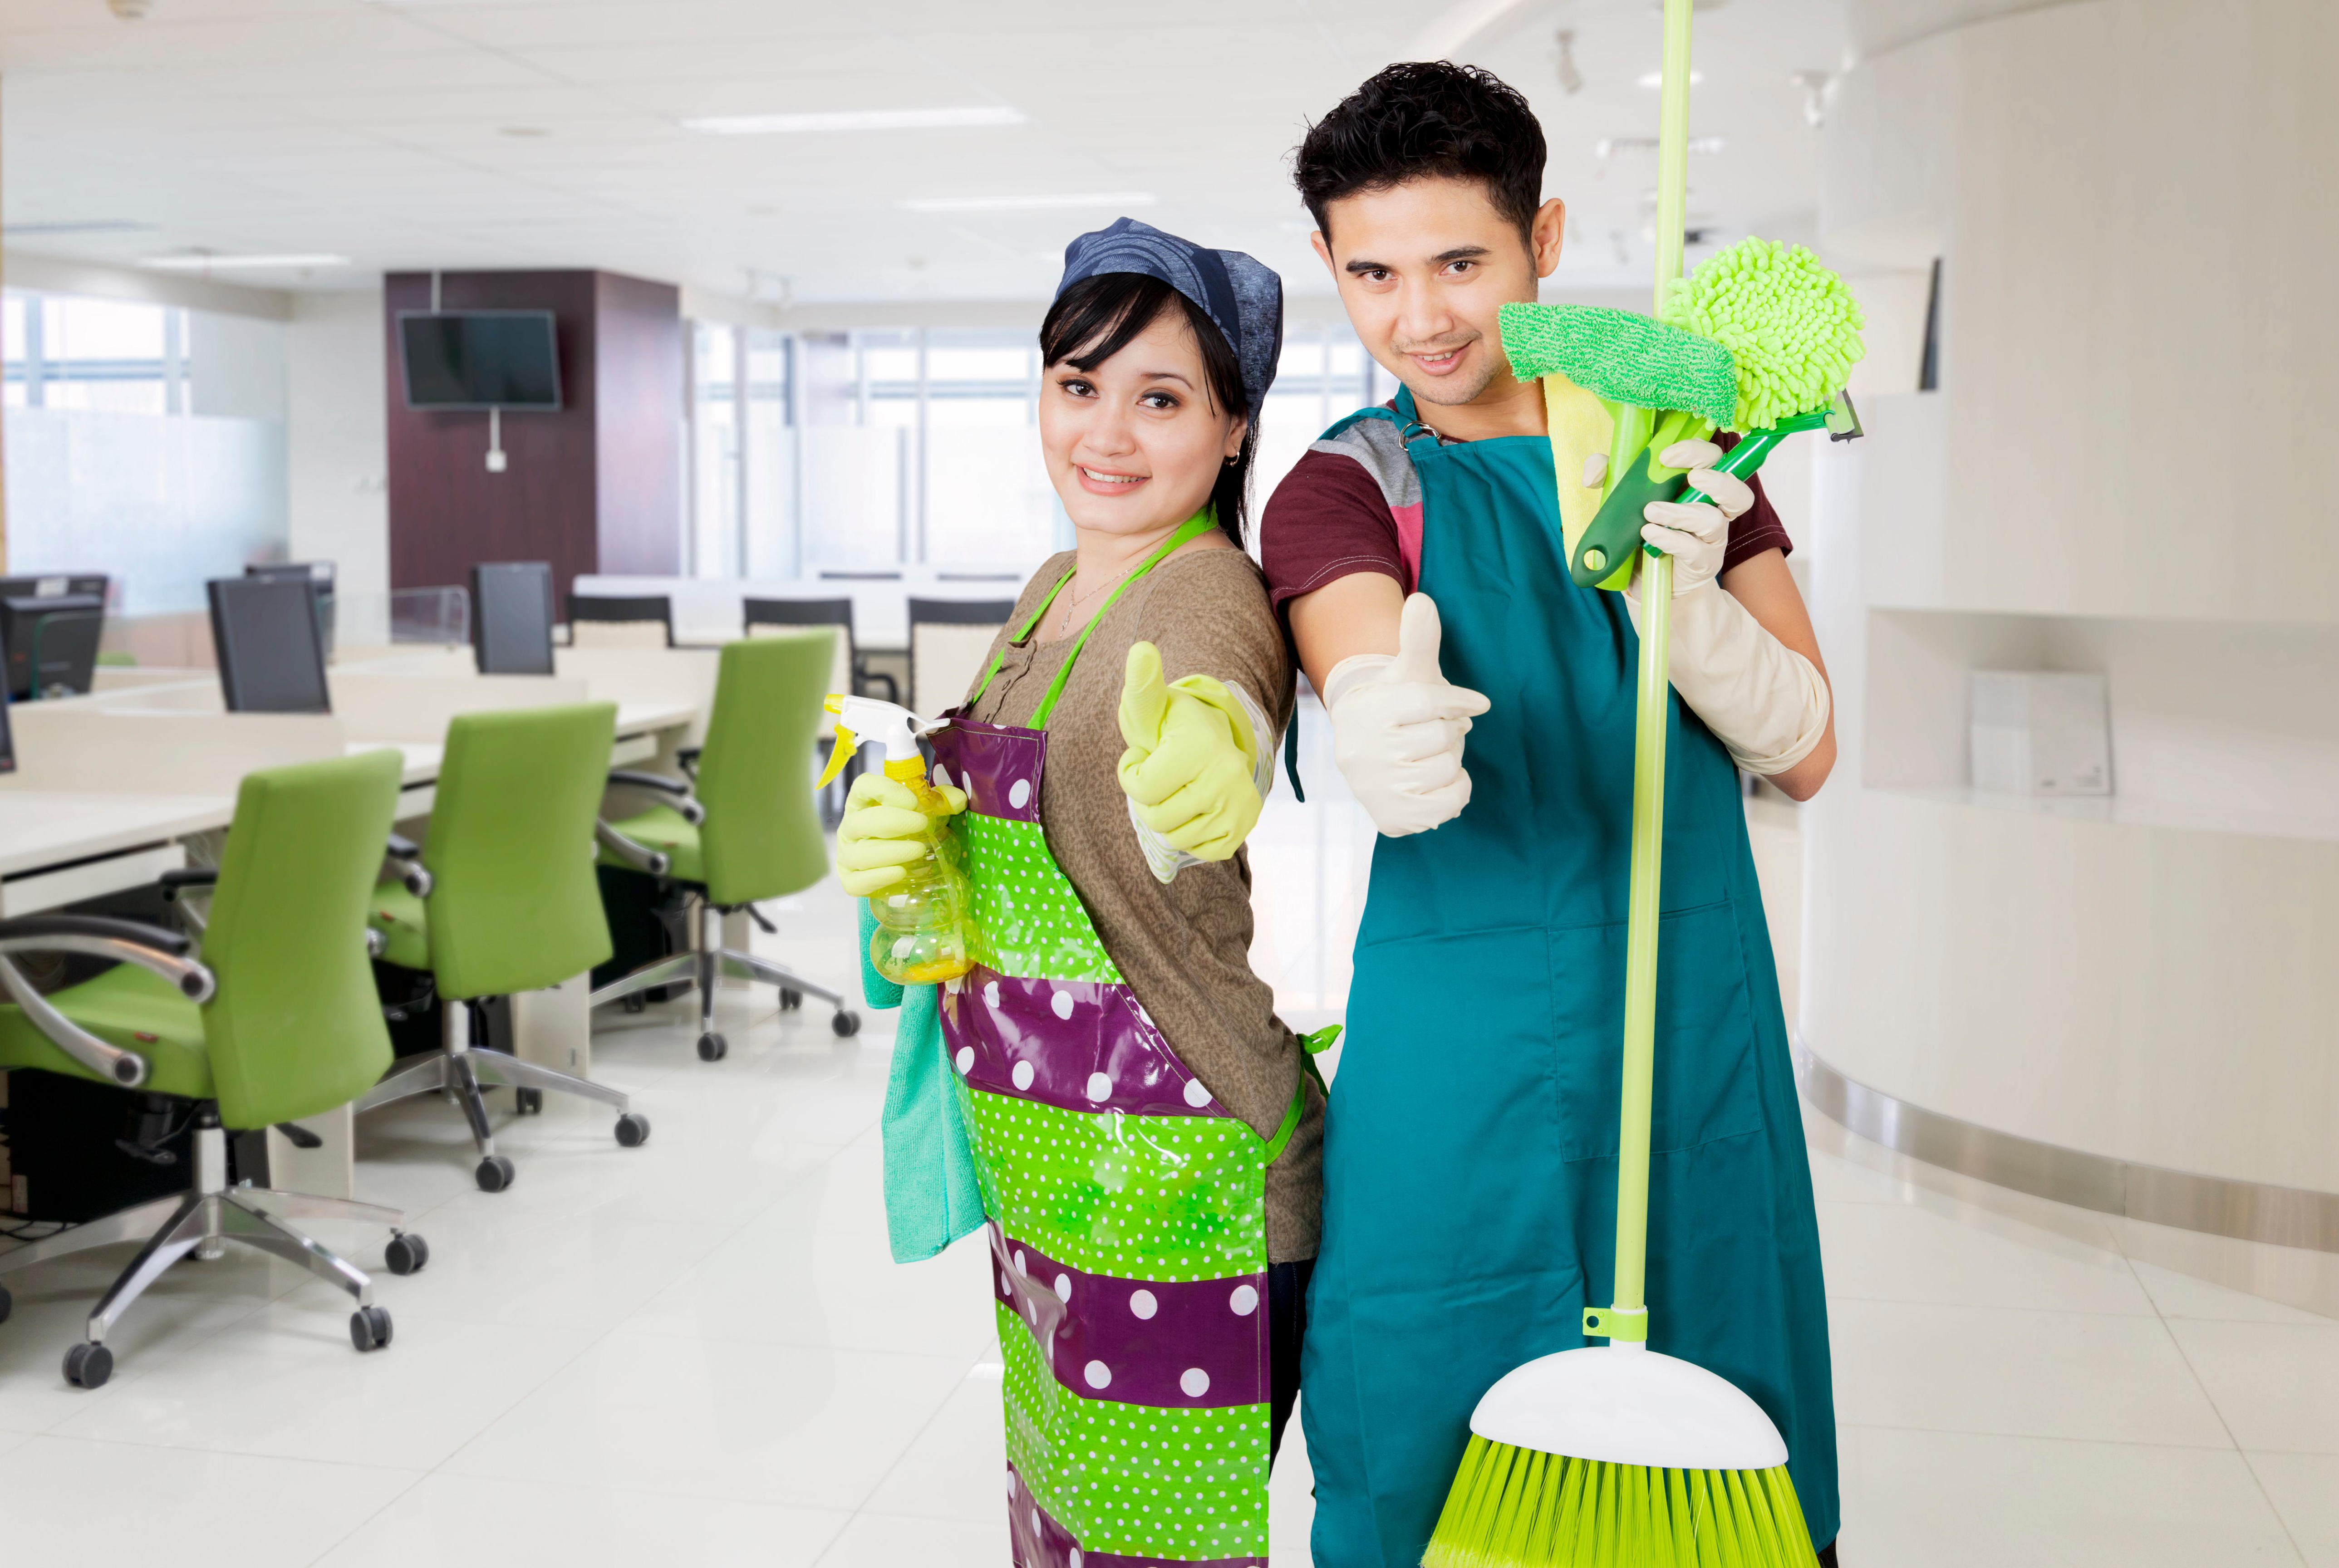 office cleaning services in Barnet